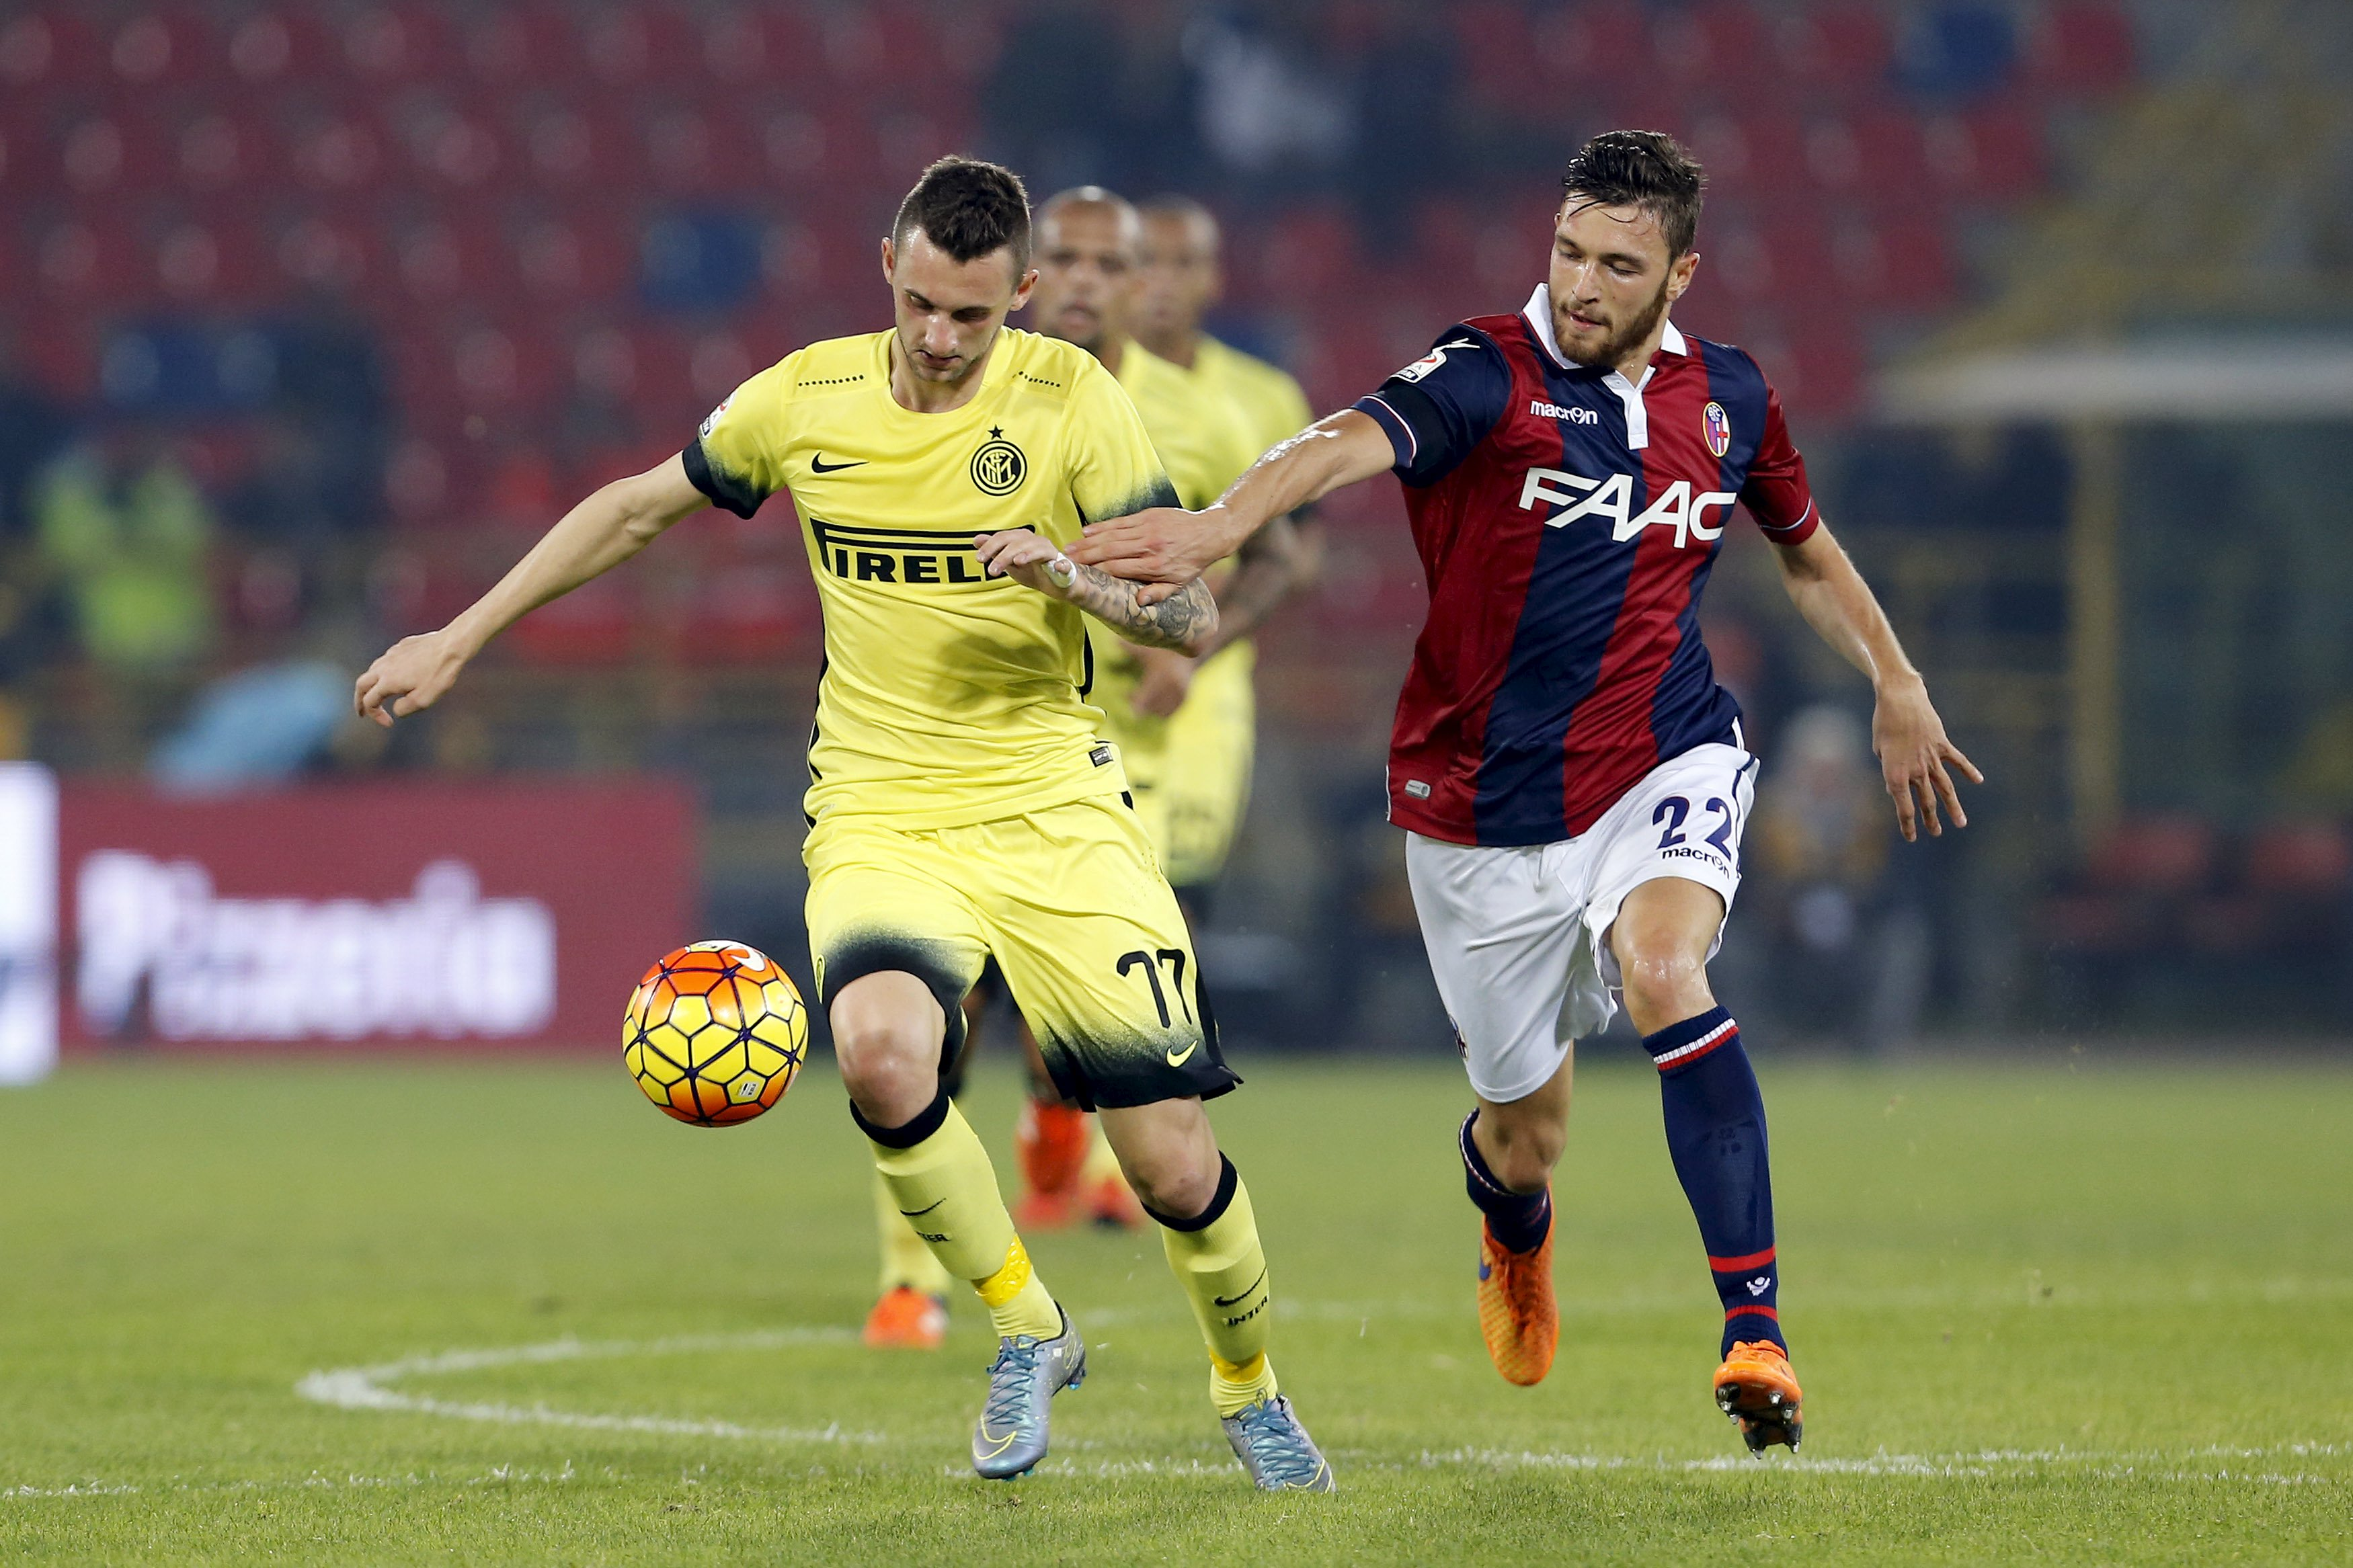 Inter Milan's Brozovic and Bologna's Rizzo fight for the ball during their Serie A soccer match in Bologna